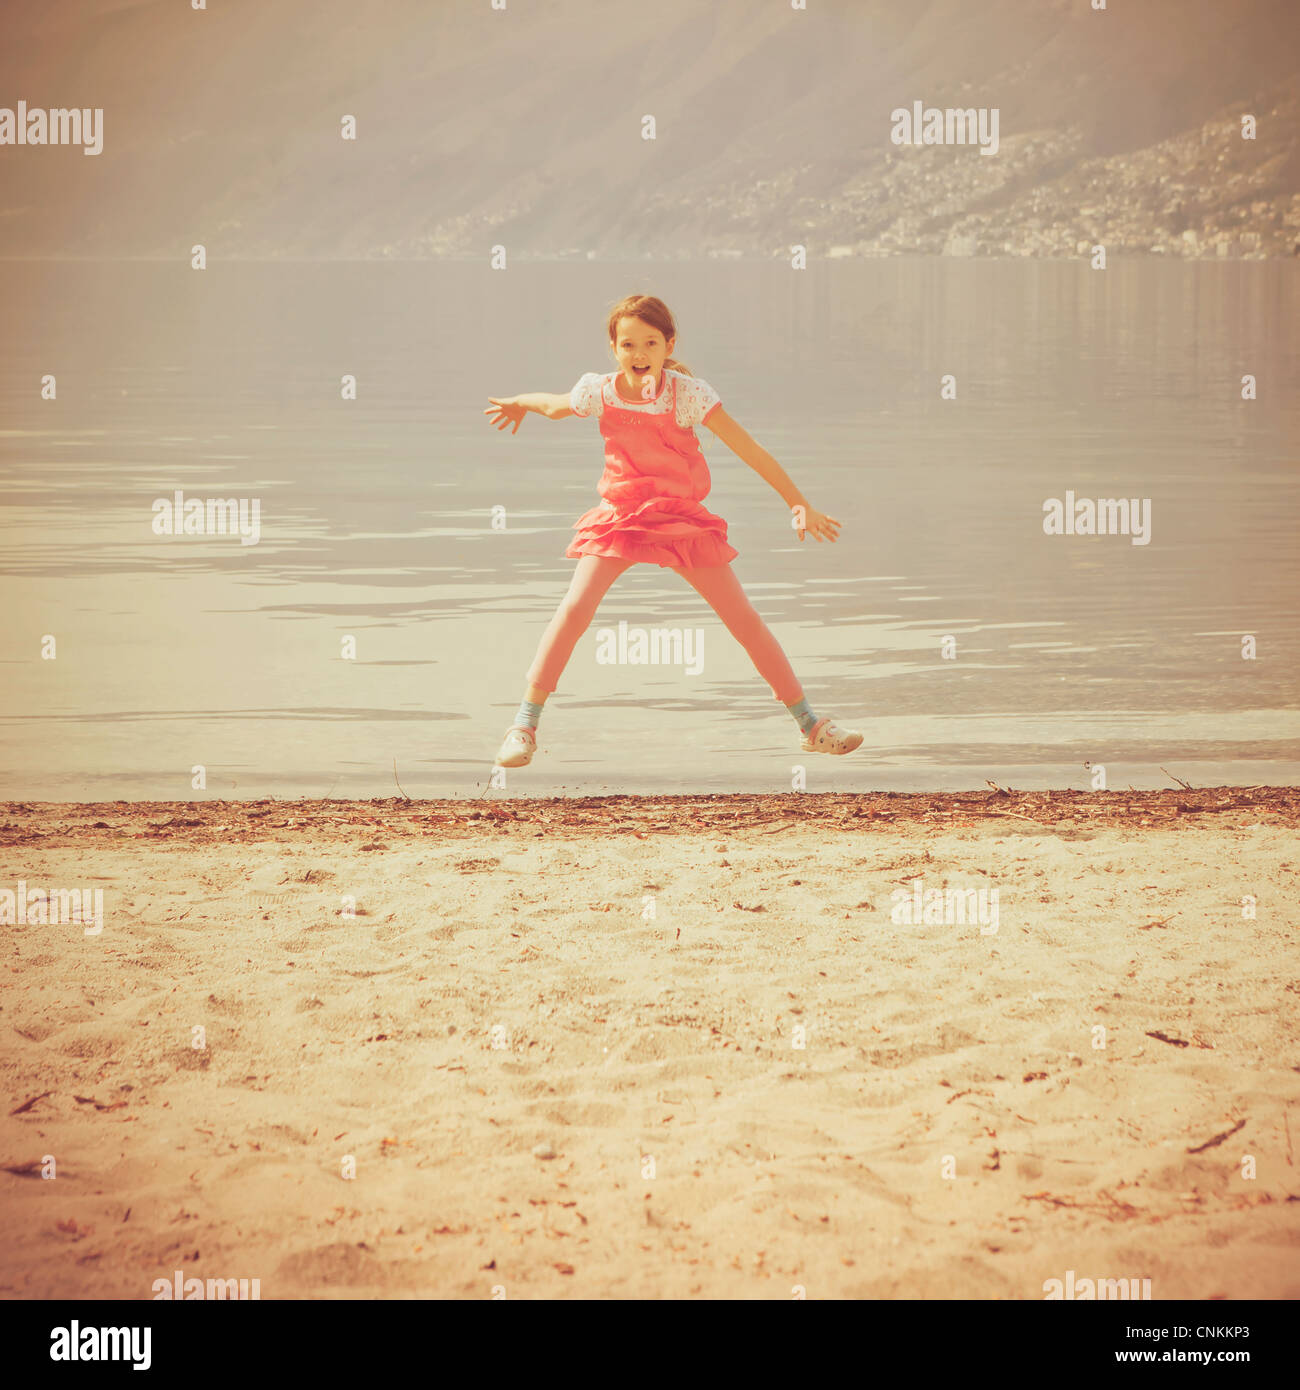 girl jumps in the air on a beach - Stock Image